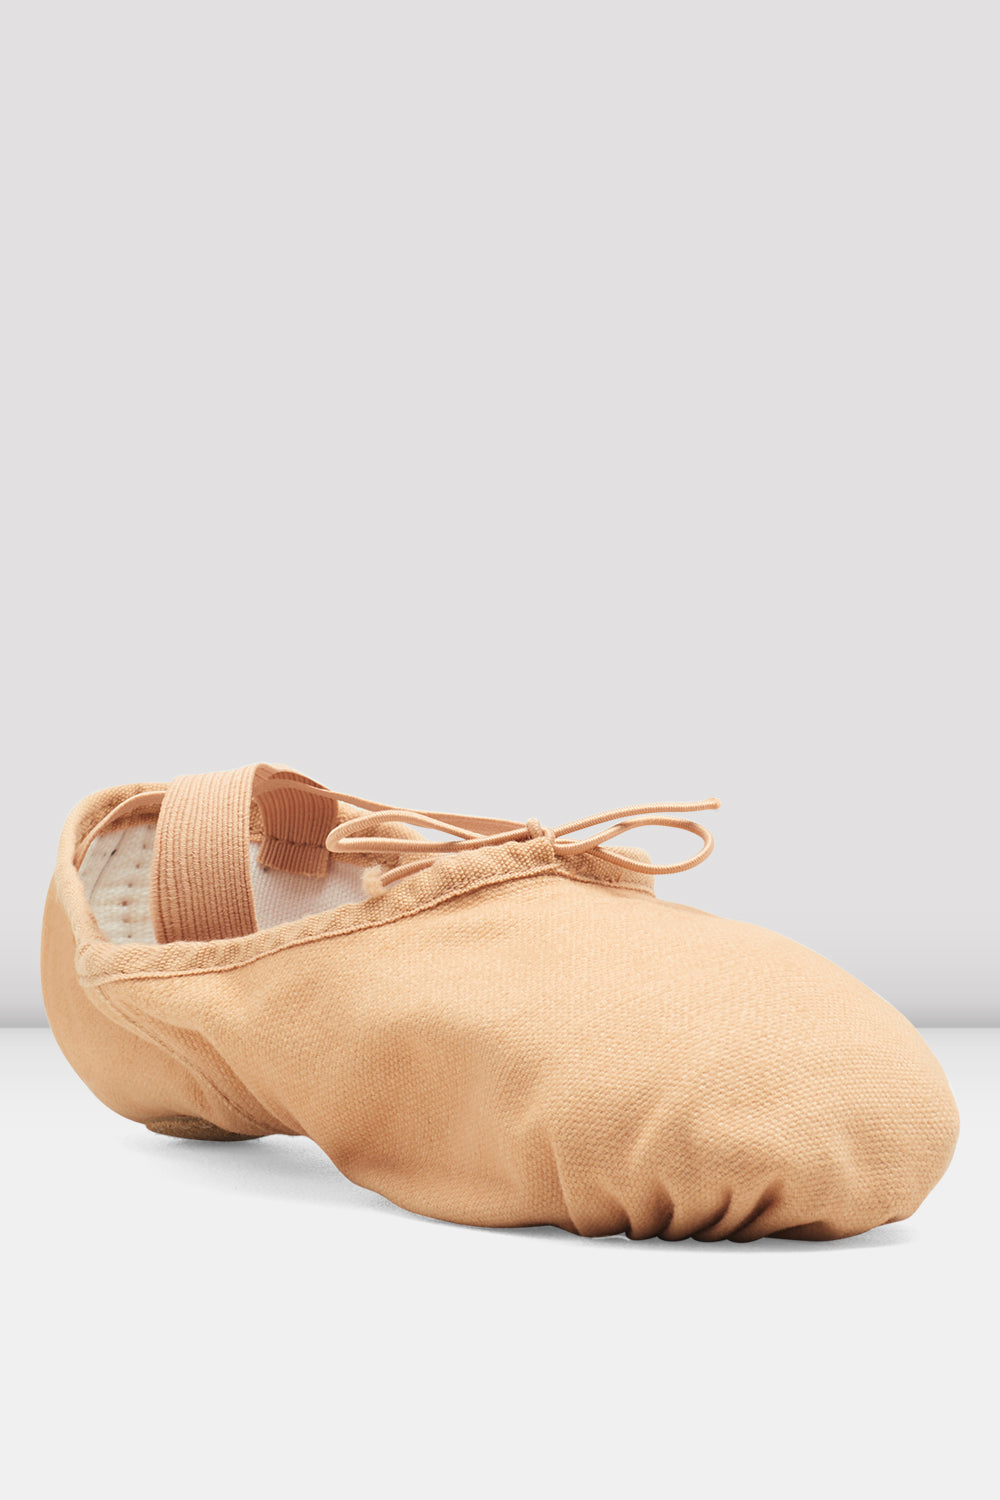 Bloch Dance Mens Pump Split Sole Canvas Ballet Slipper//Shoe Dance Flesh 4.5 D US S0277M